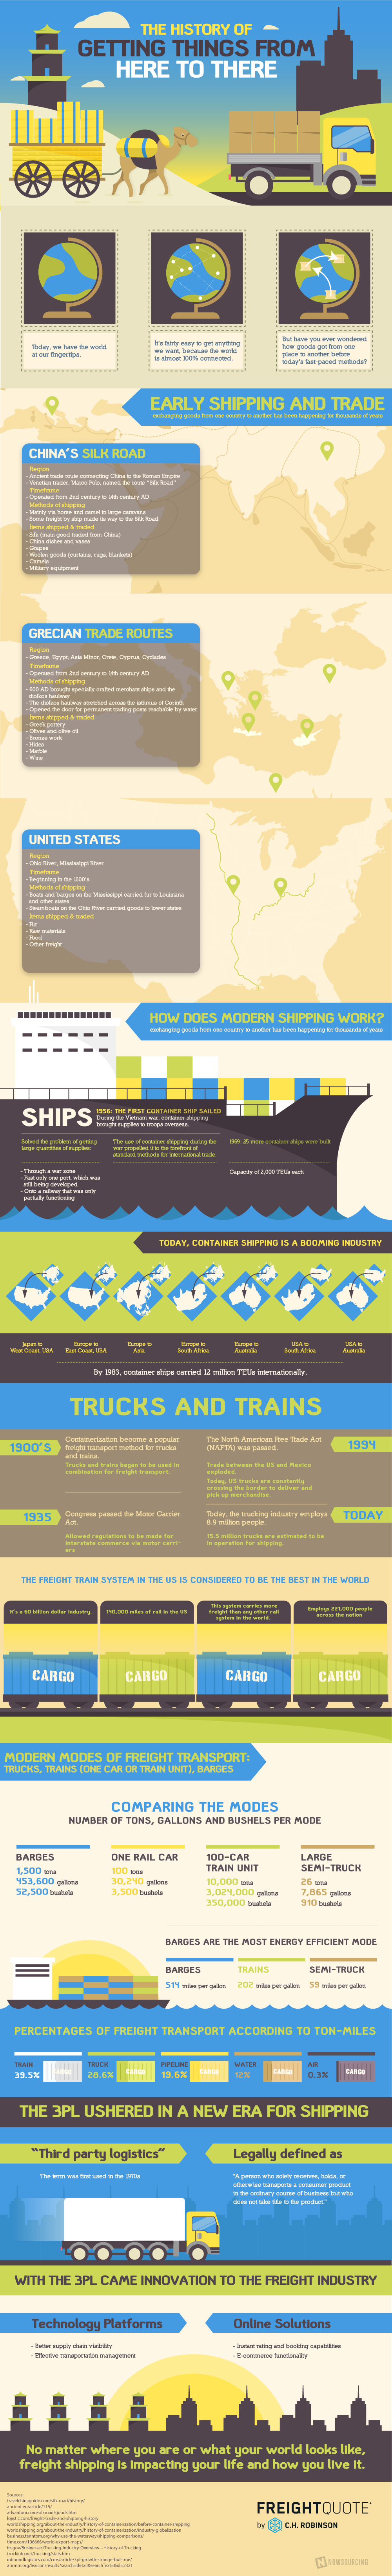 The history of freight shipping